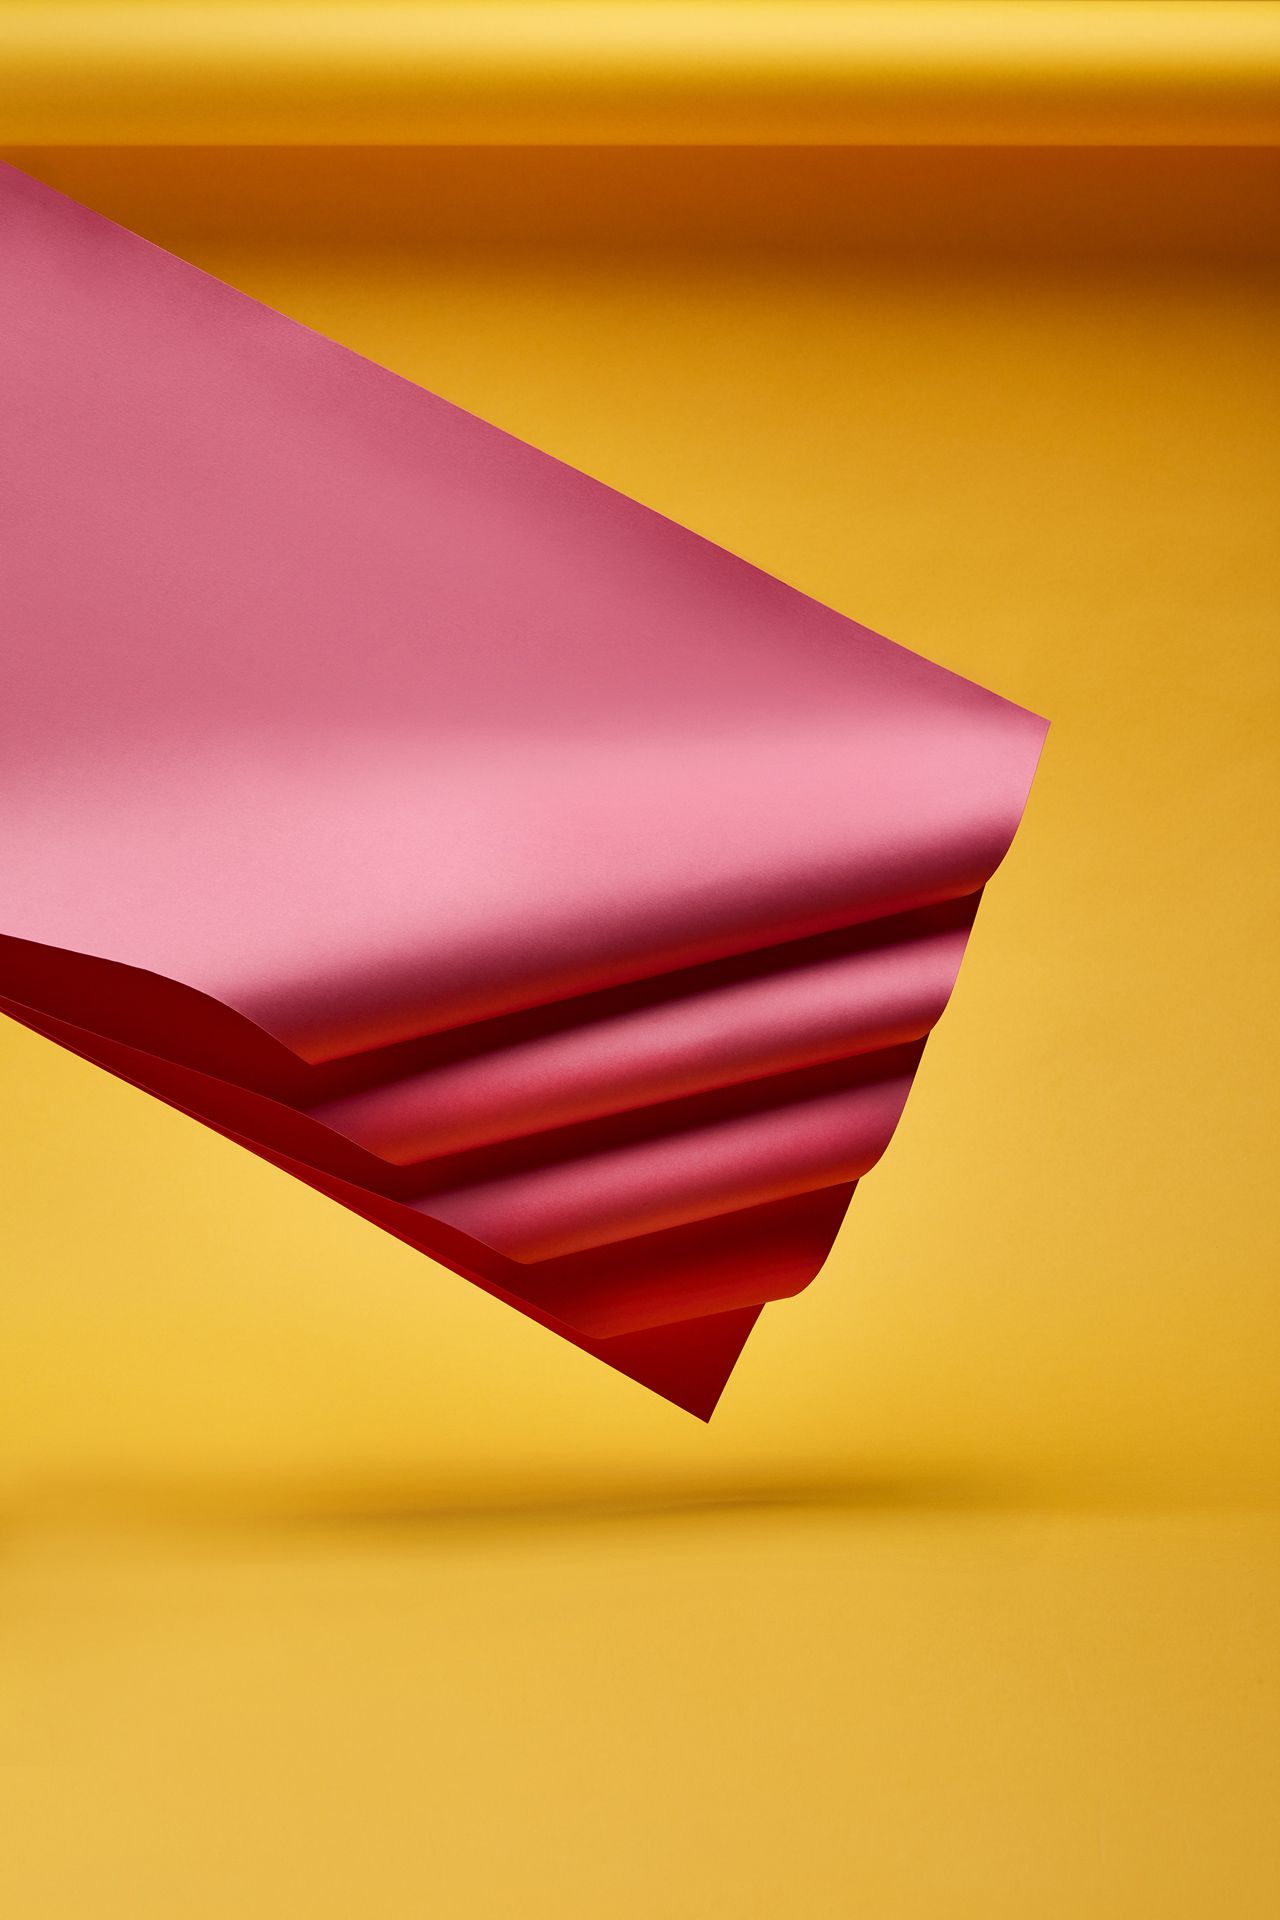 twisted and layered pink sheets of paper floating in the air on yellow background by Mathieu Levesque for enRoute